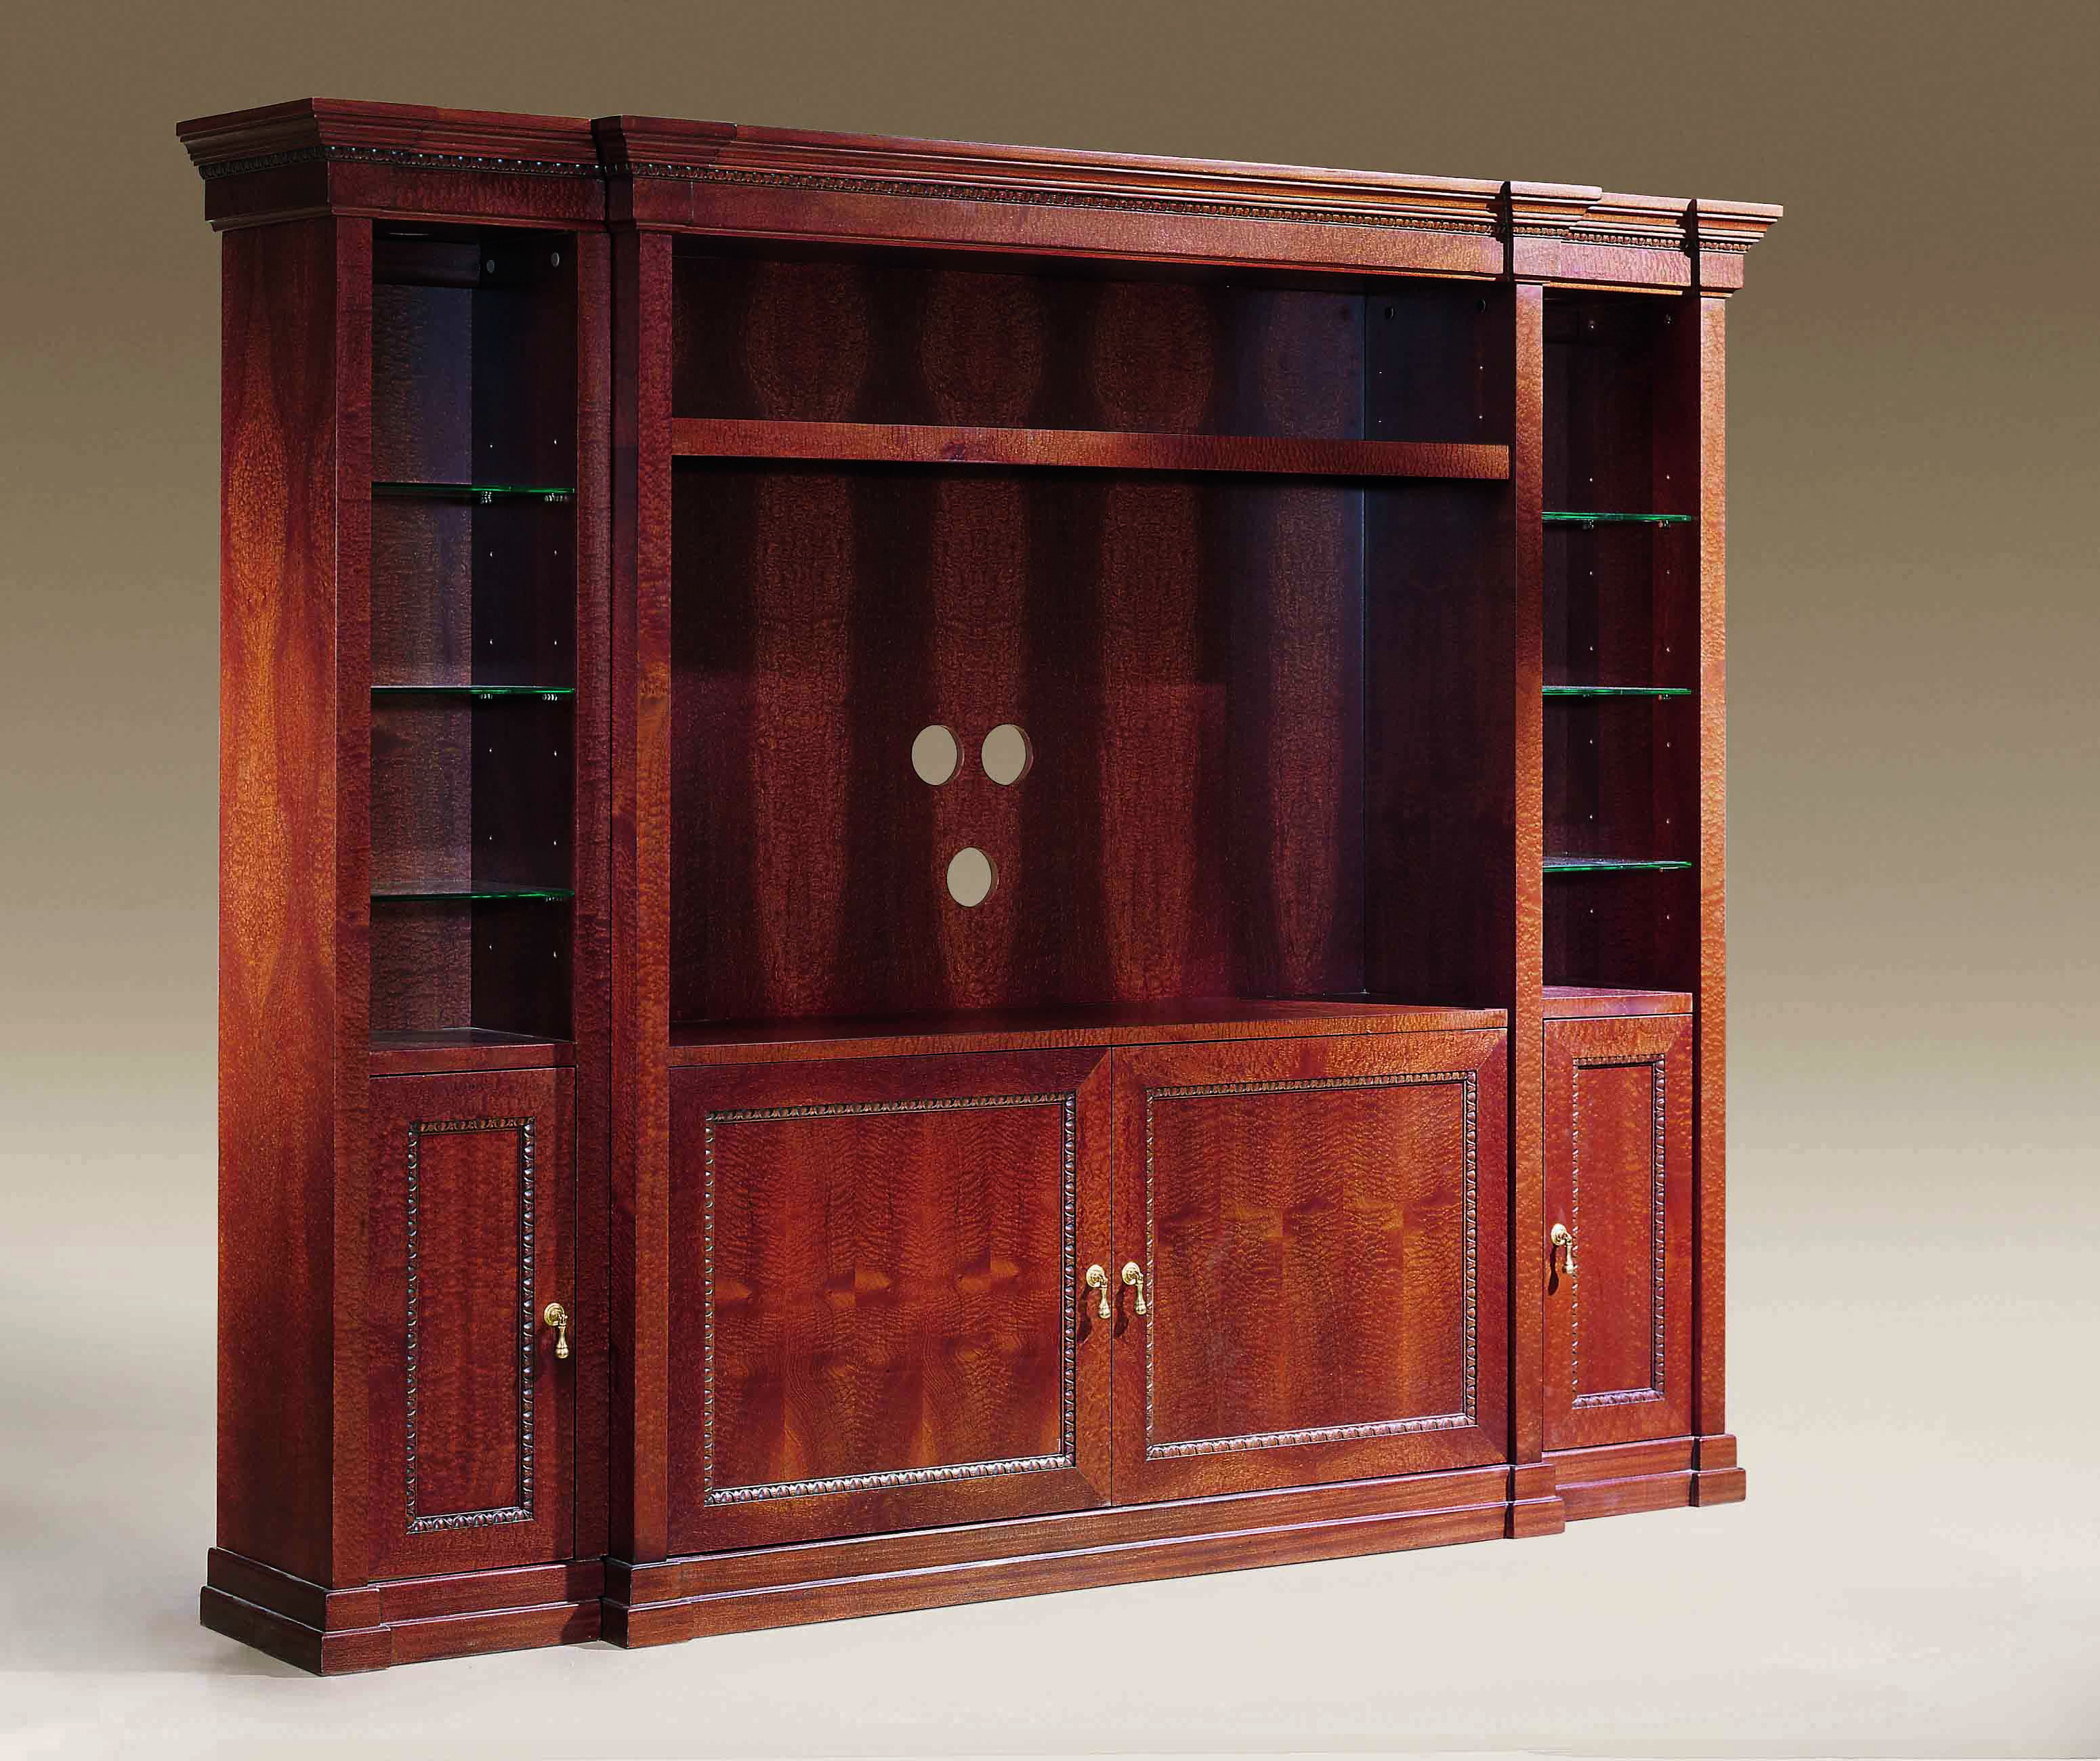 ARMOIRE TV SYSTEM AM-LMRB-C-14